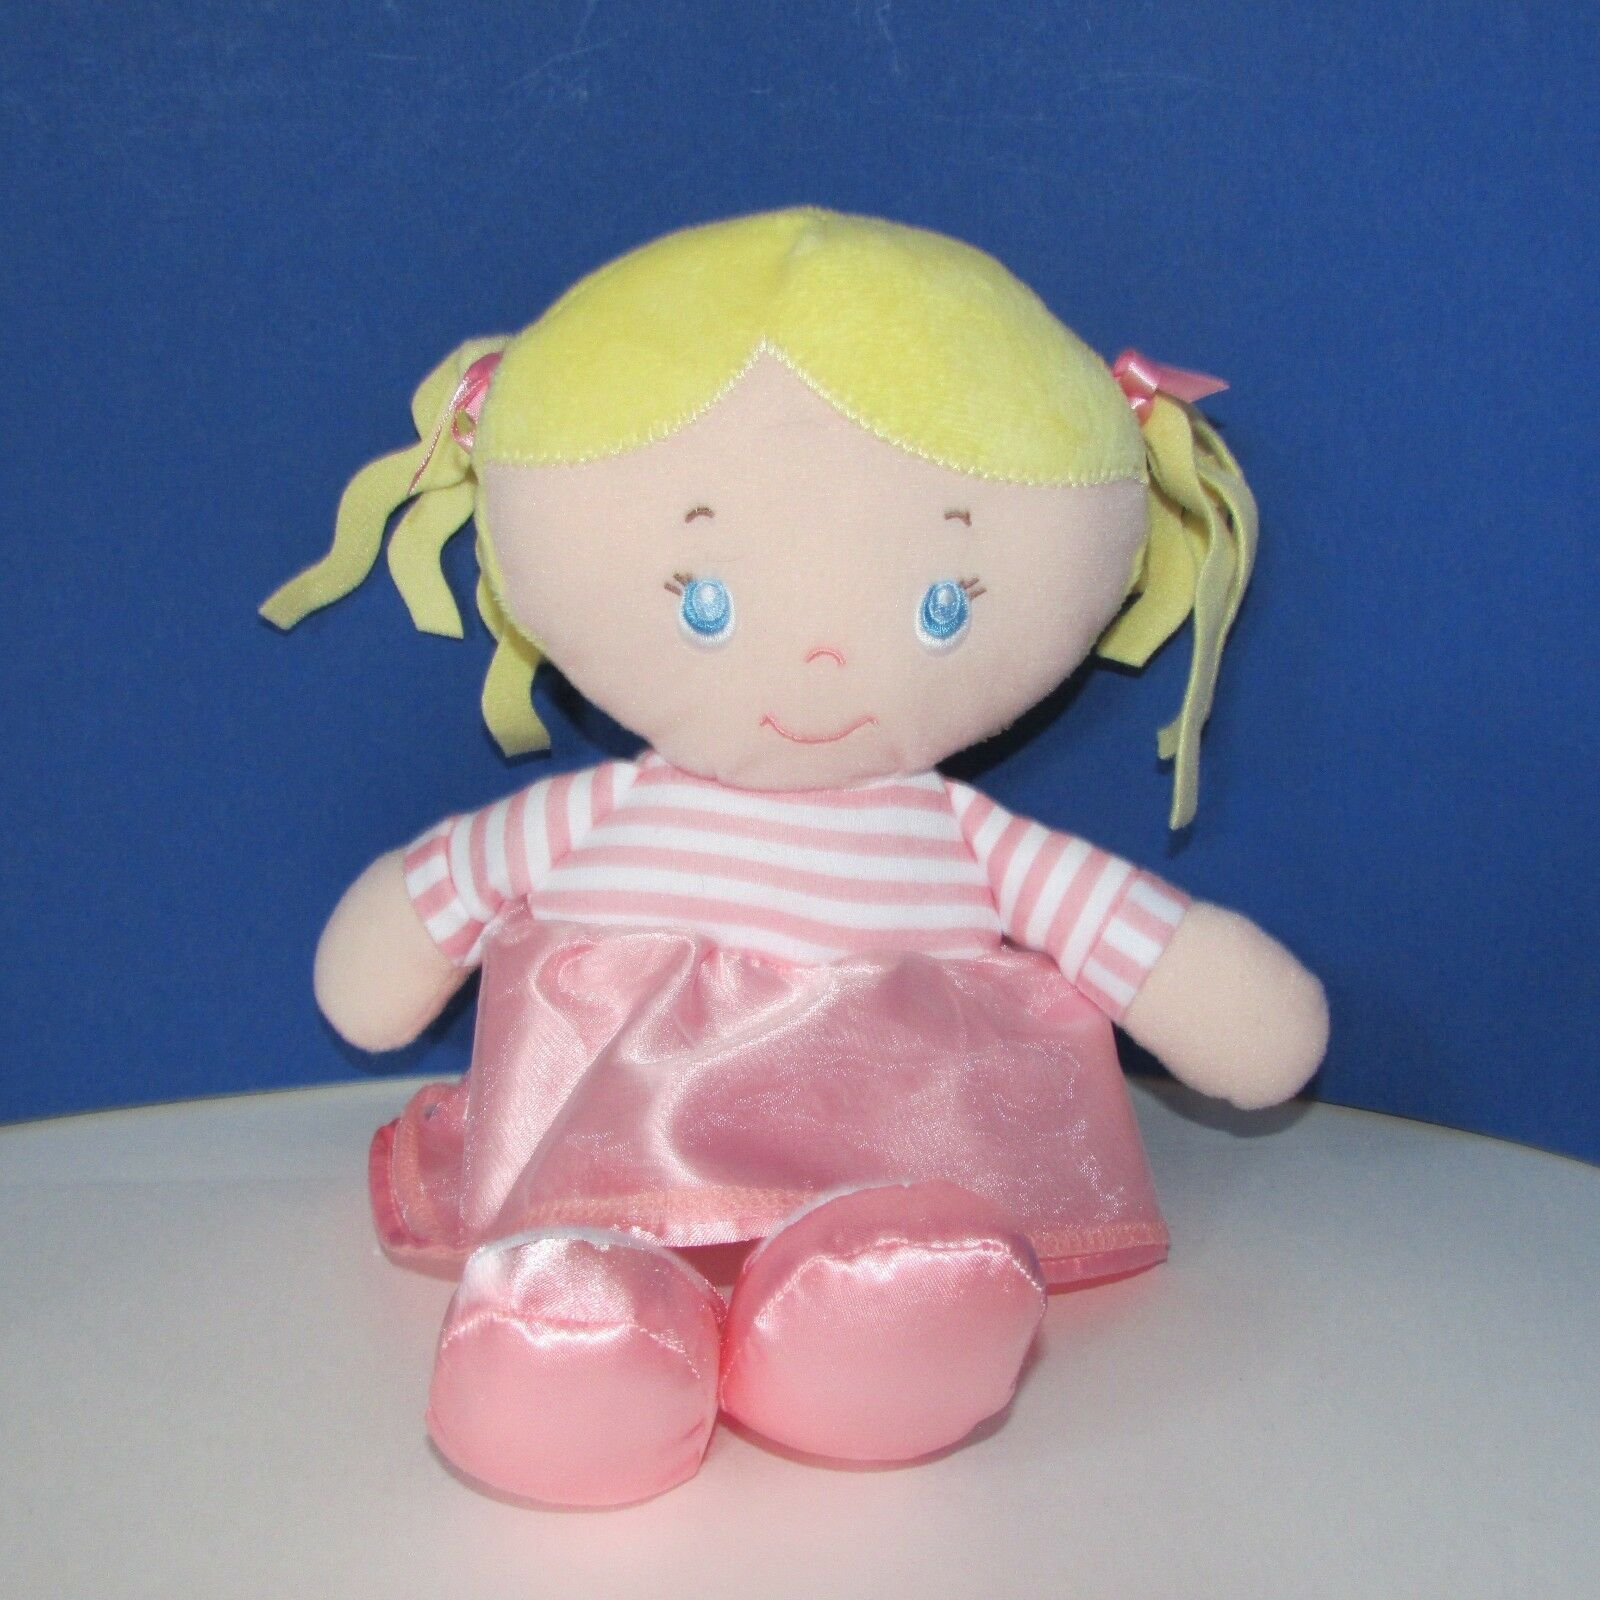 Kids Preferred first doll baby soft plush pink striped ballet dress slippers toy